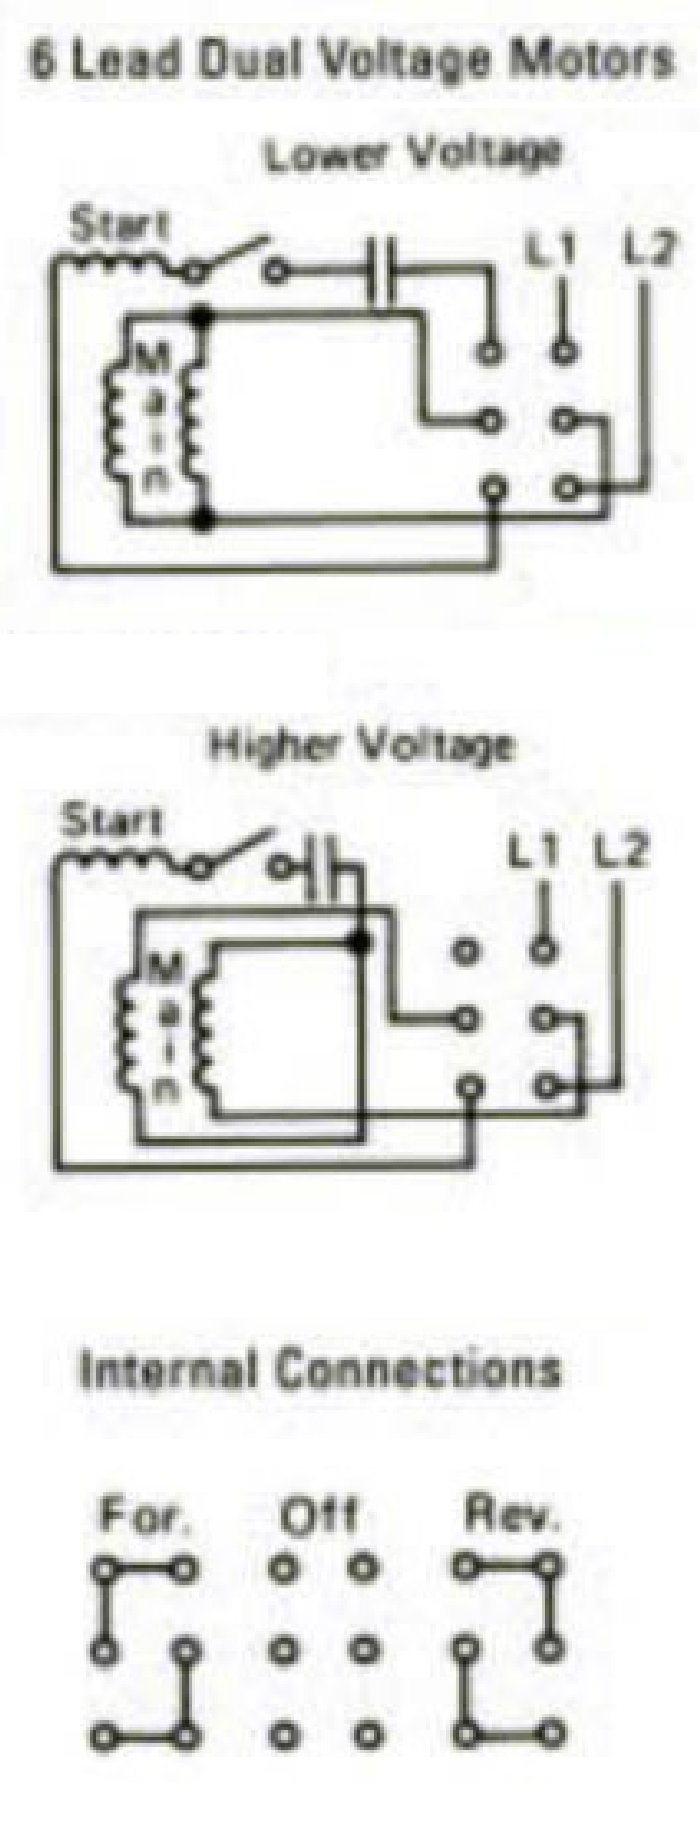 hight resolution of bremas boat lift switch wiring diagram free wiring diagram boat wiring diagram 19